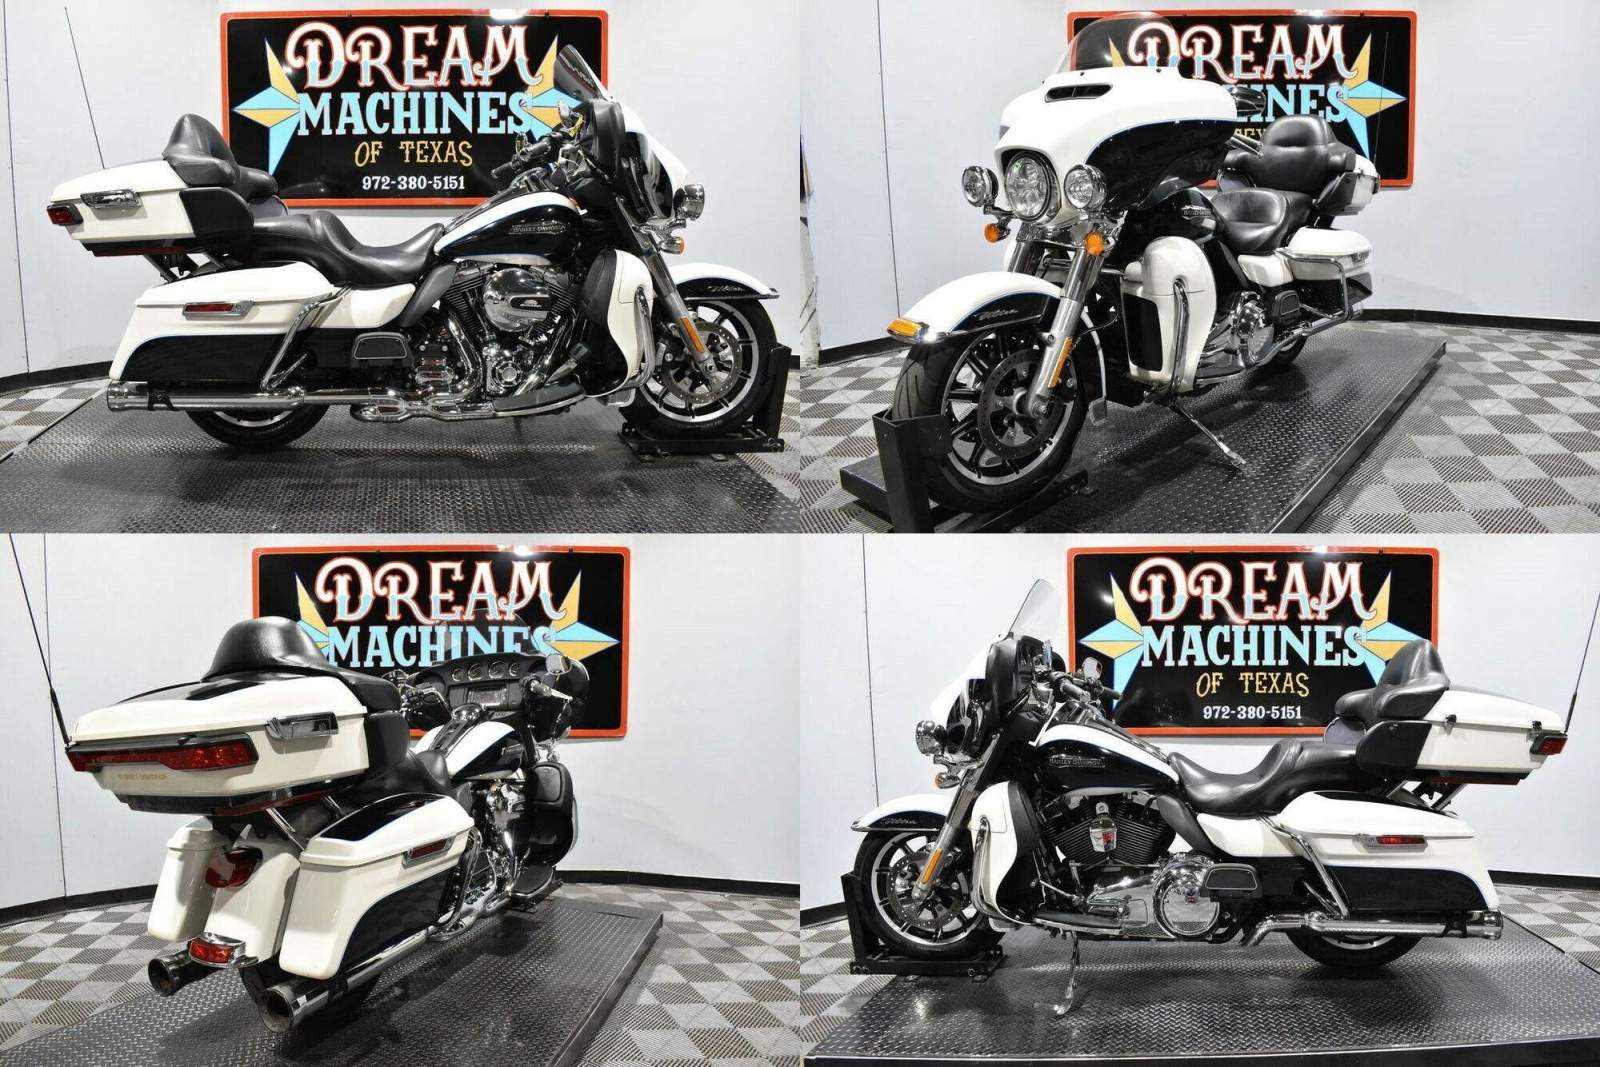 2014 Harley-Davidson FLHTCU - Electra Glide Ultra Classic White used for sale craigslist